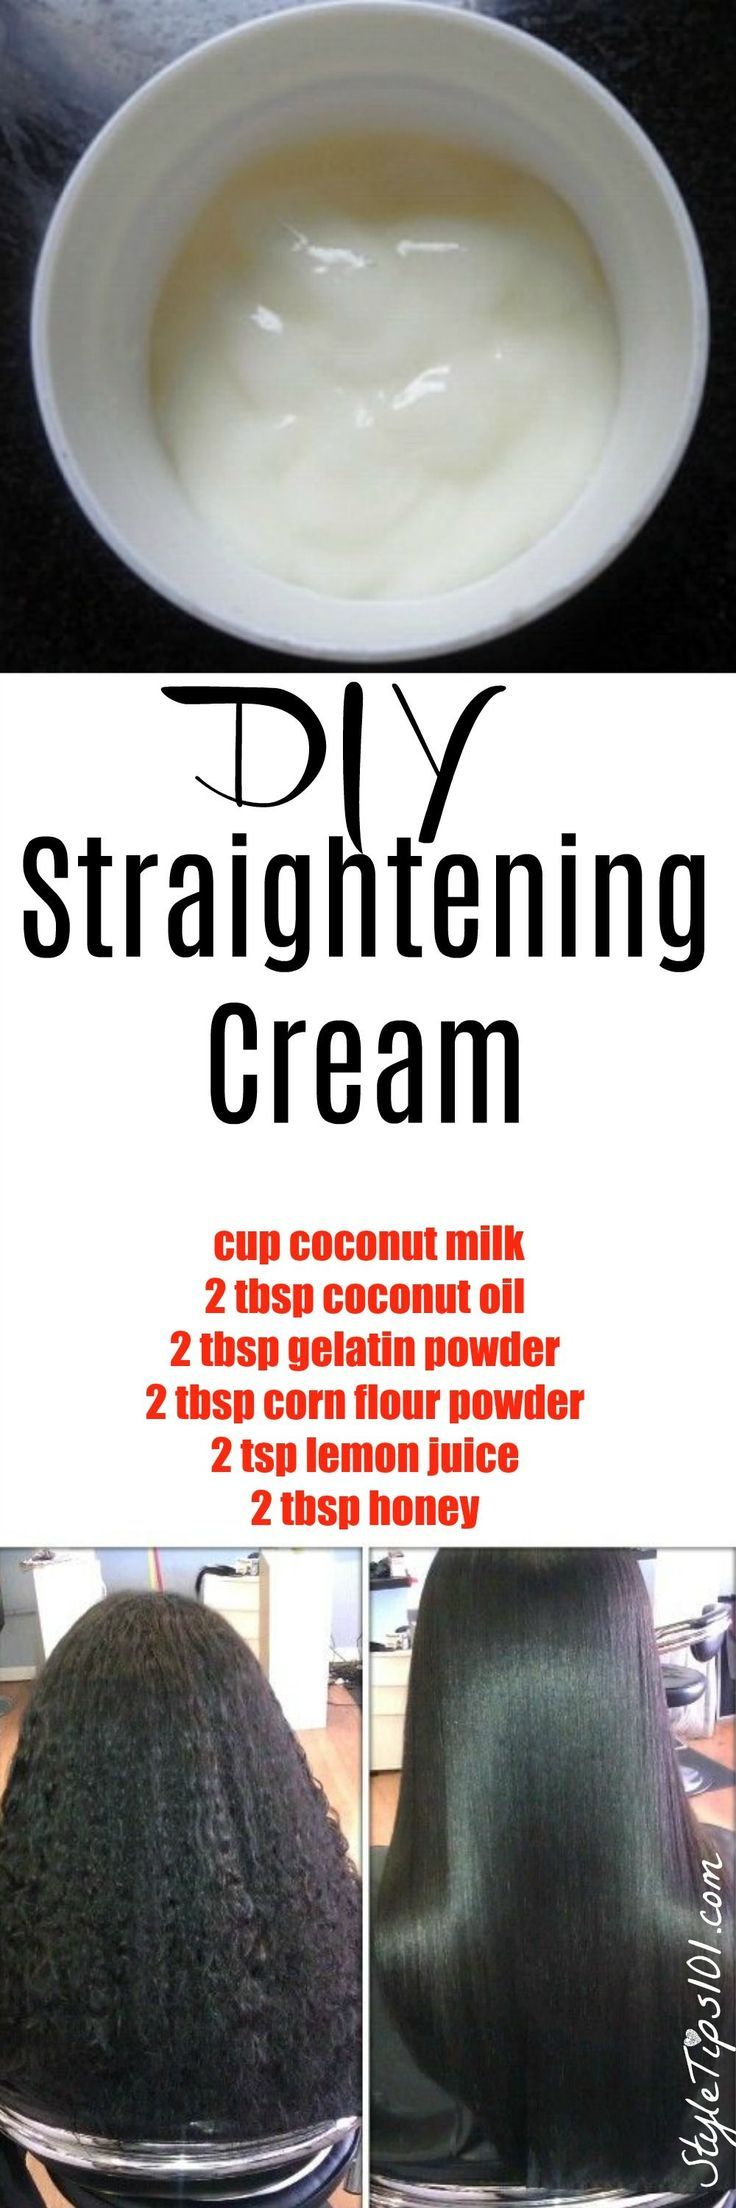 DIY Hair Care  & Tips : DIY Hair Straightening Cream